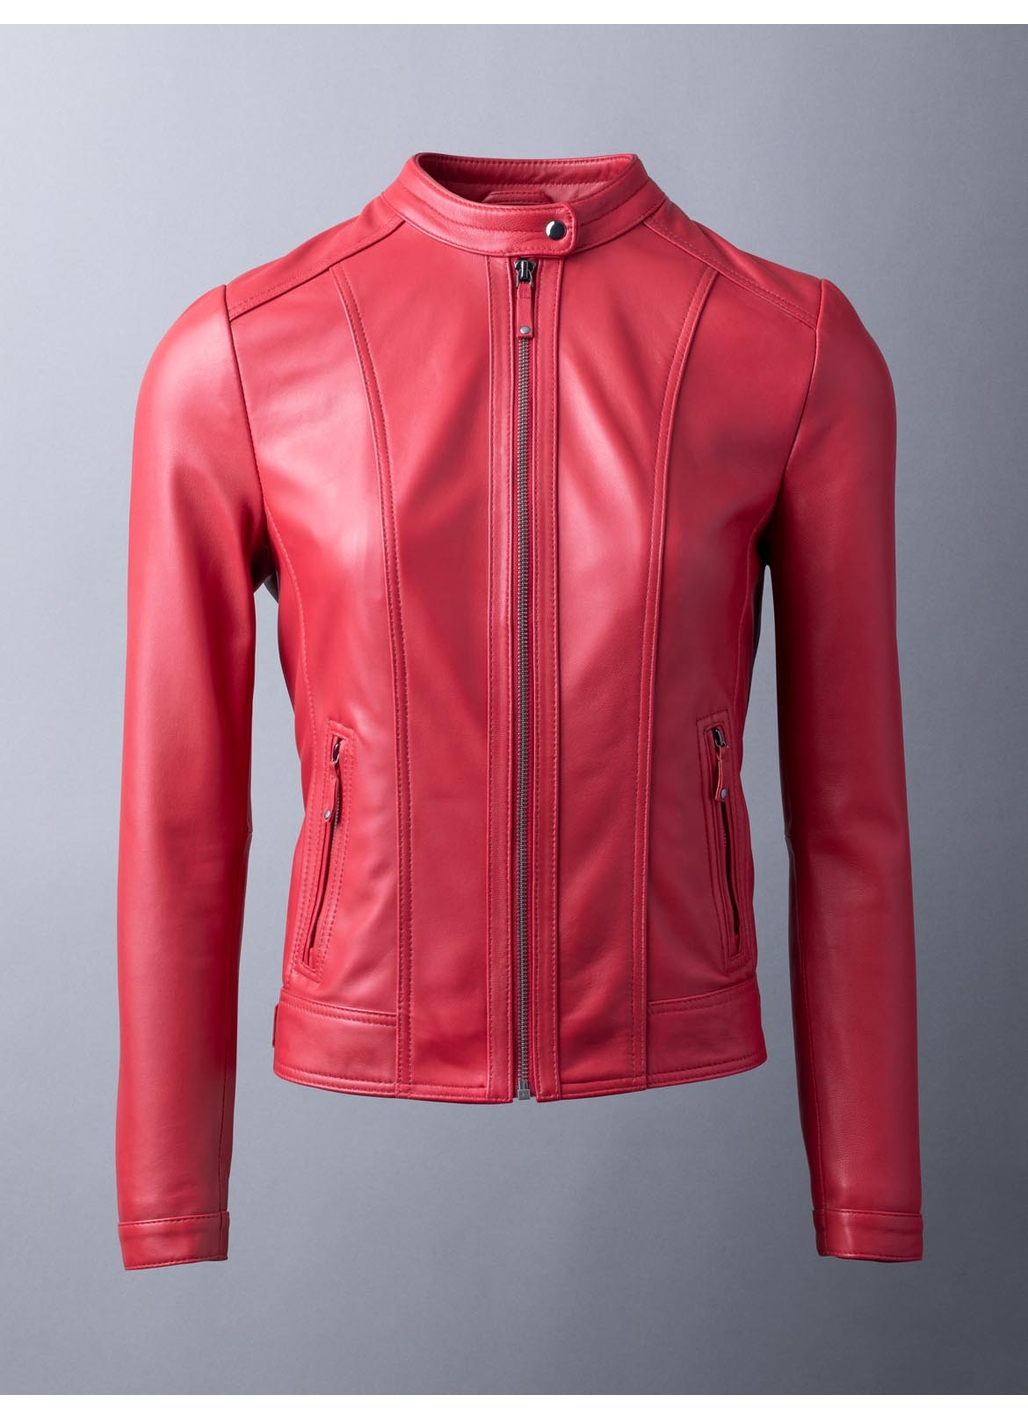 Thorpe Leather Jacket in Red